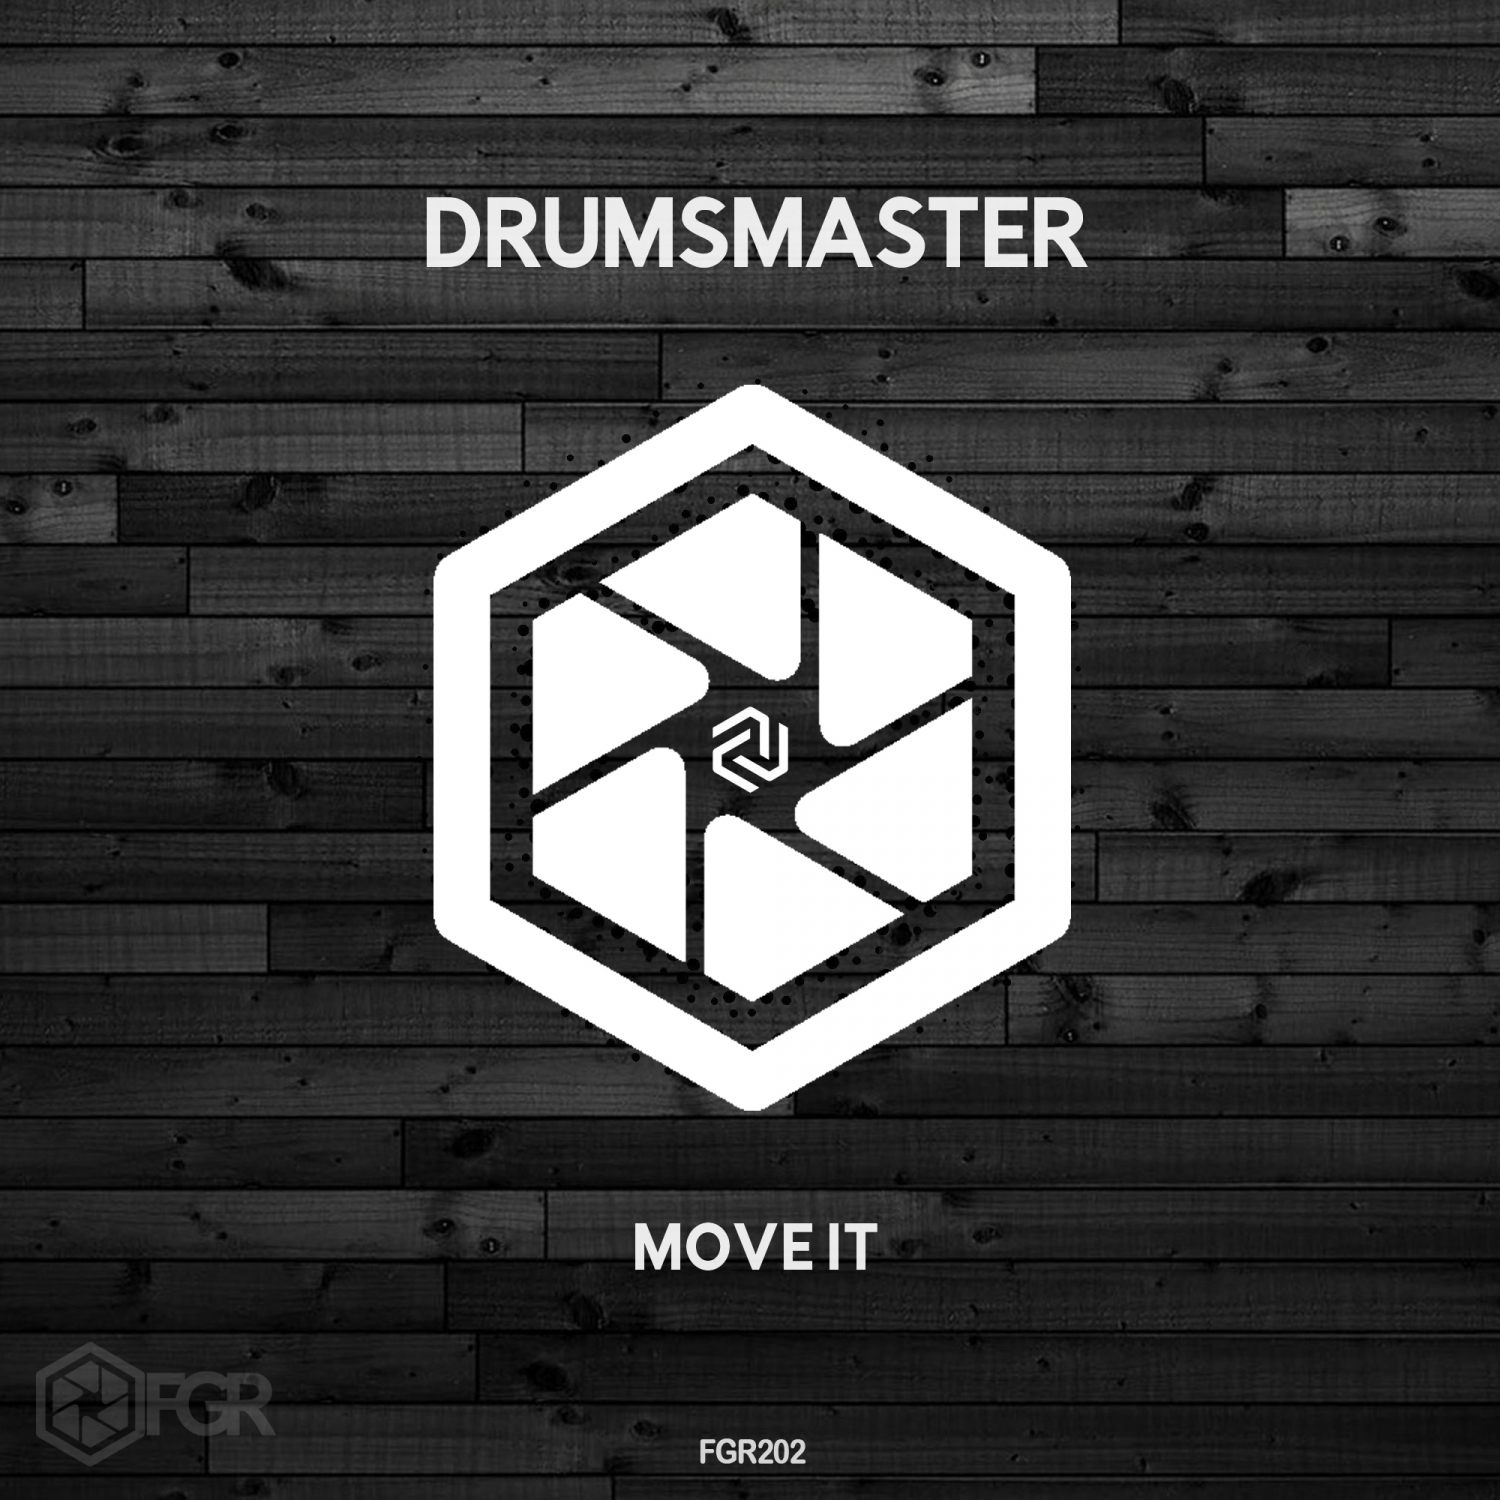 DrumsMaster - Move It (Original Mix)